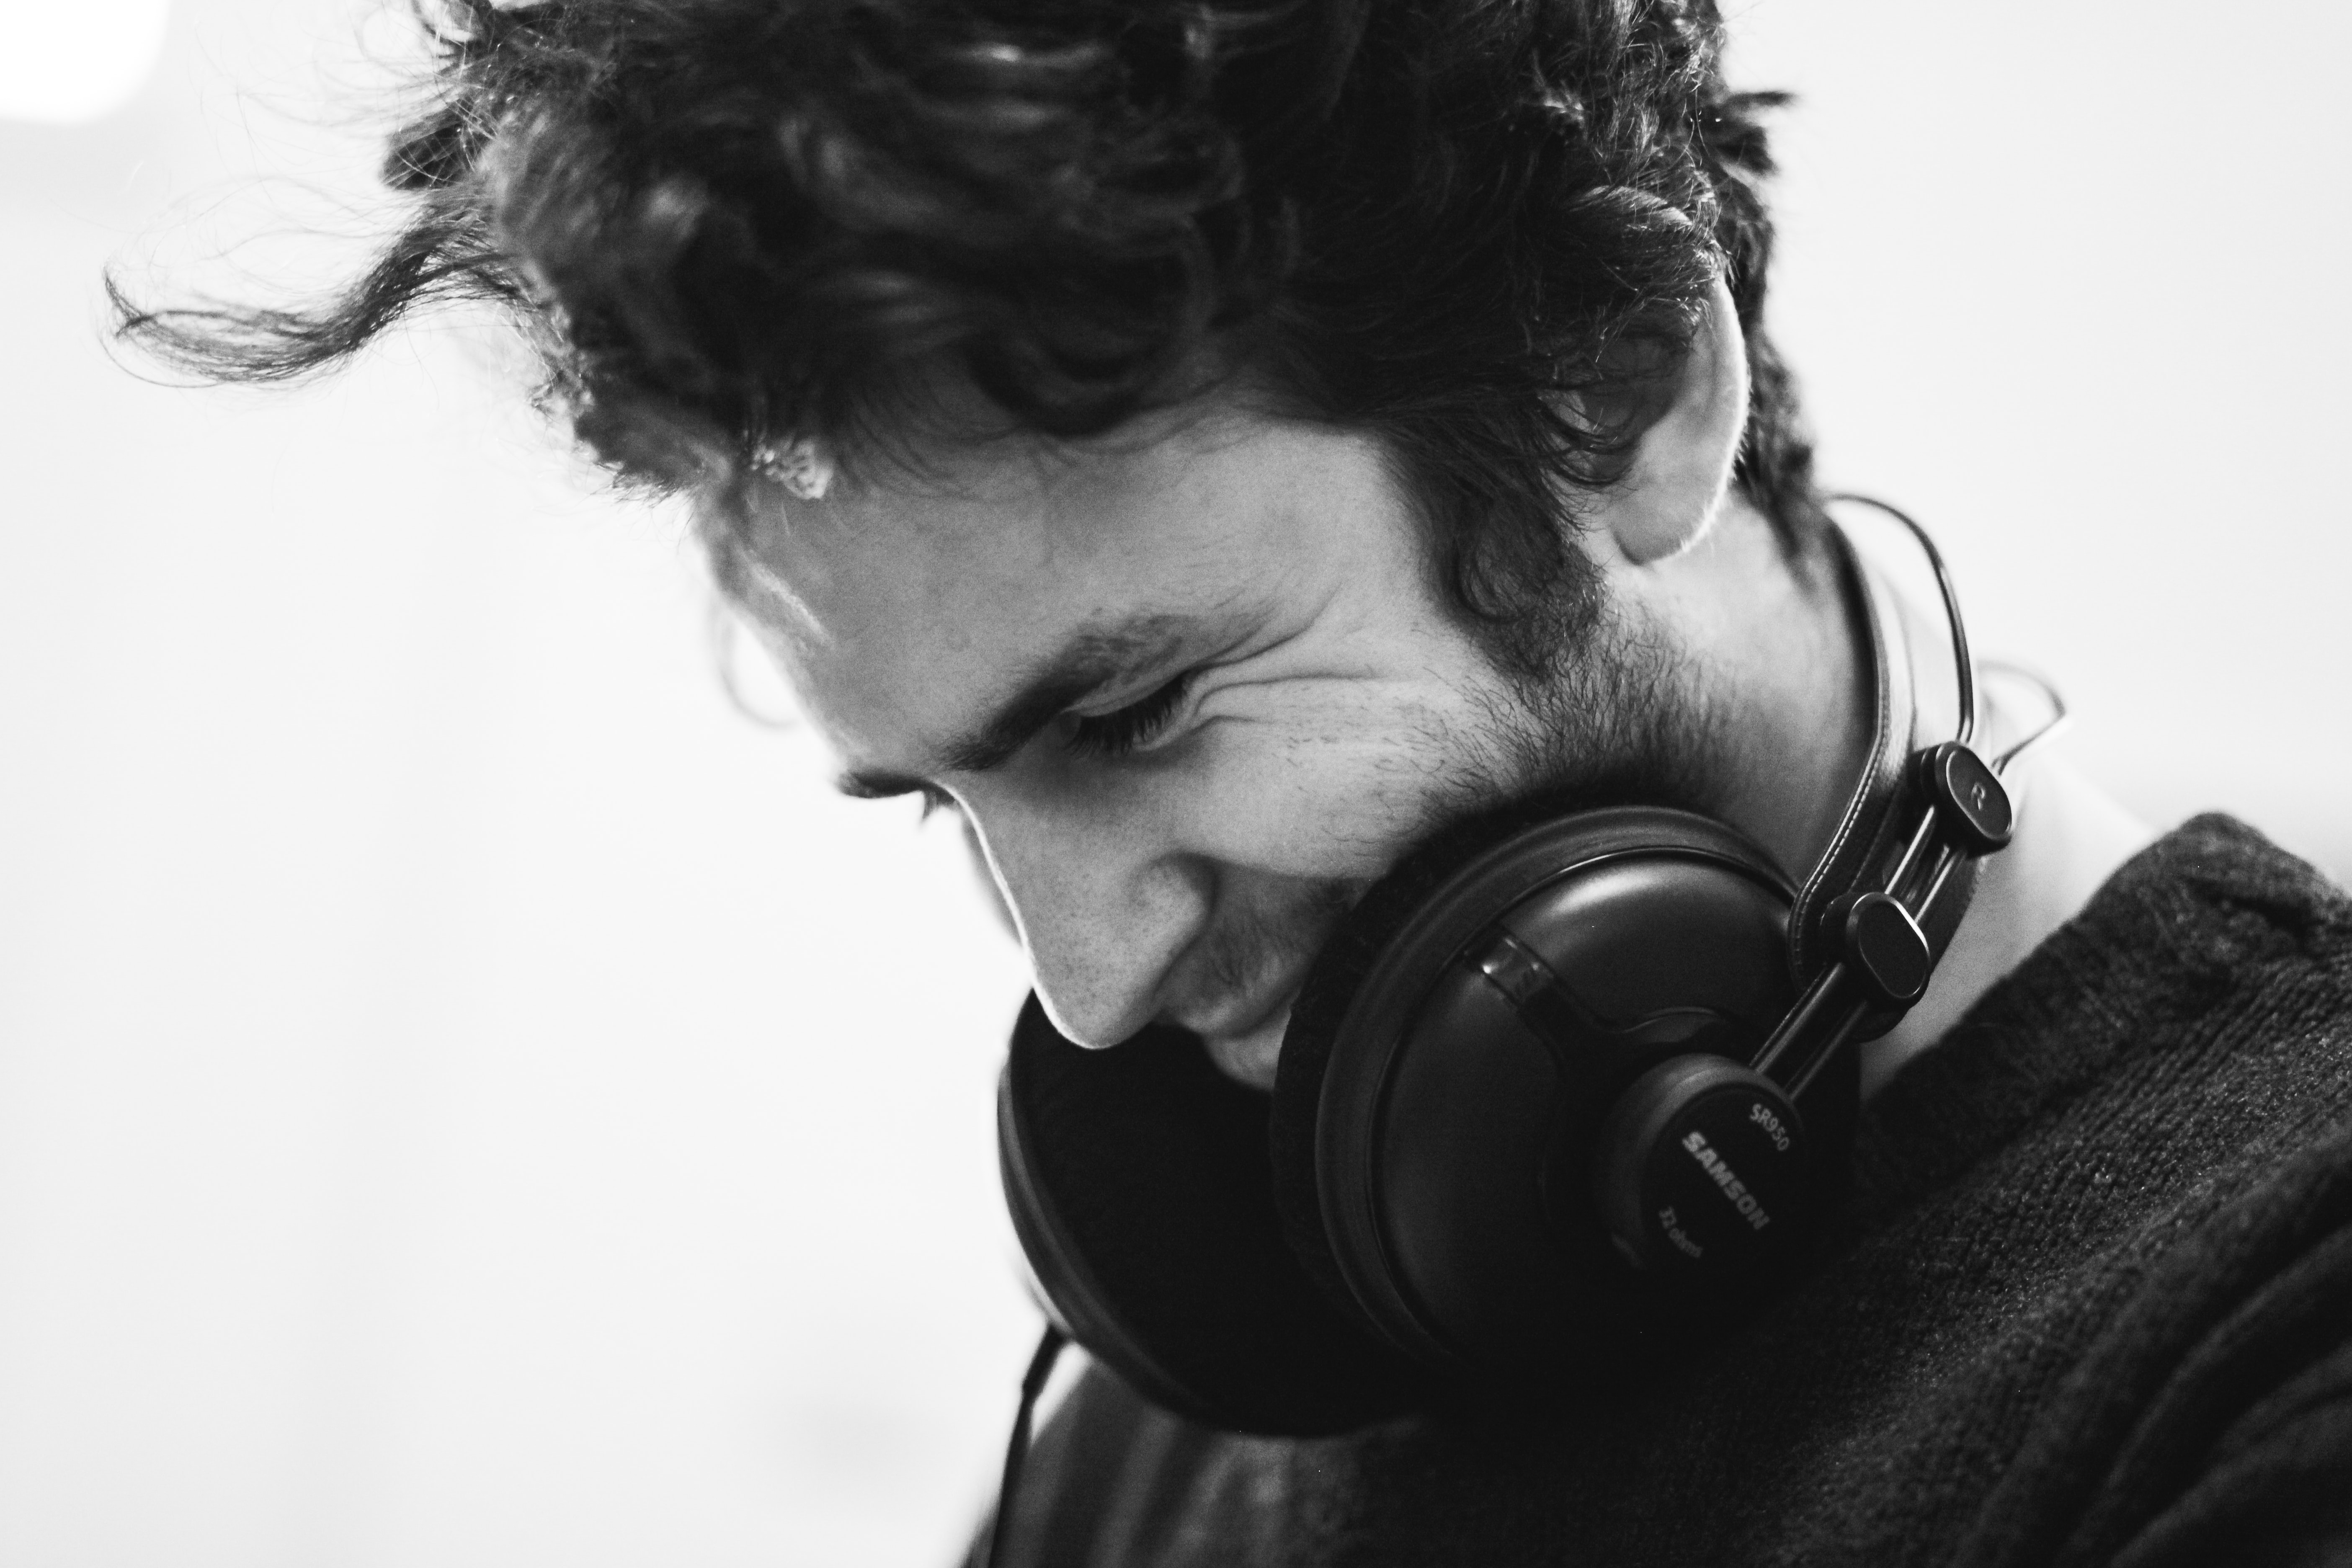 grayscale photography of man with headphones on neck